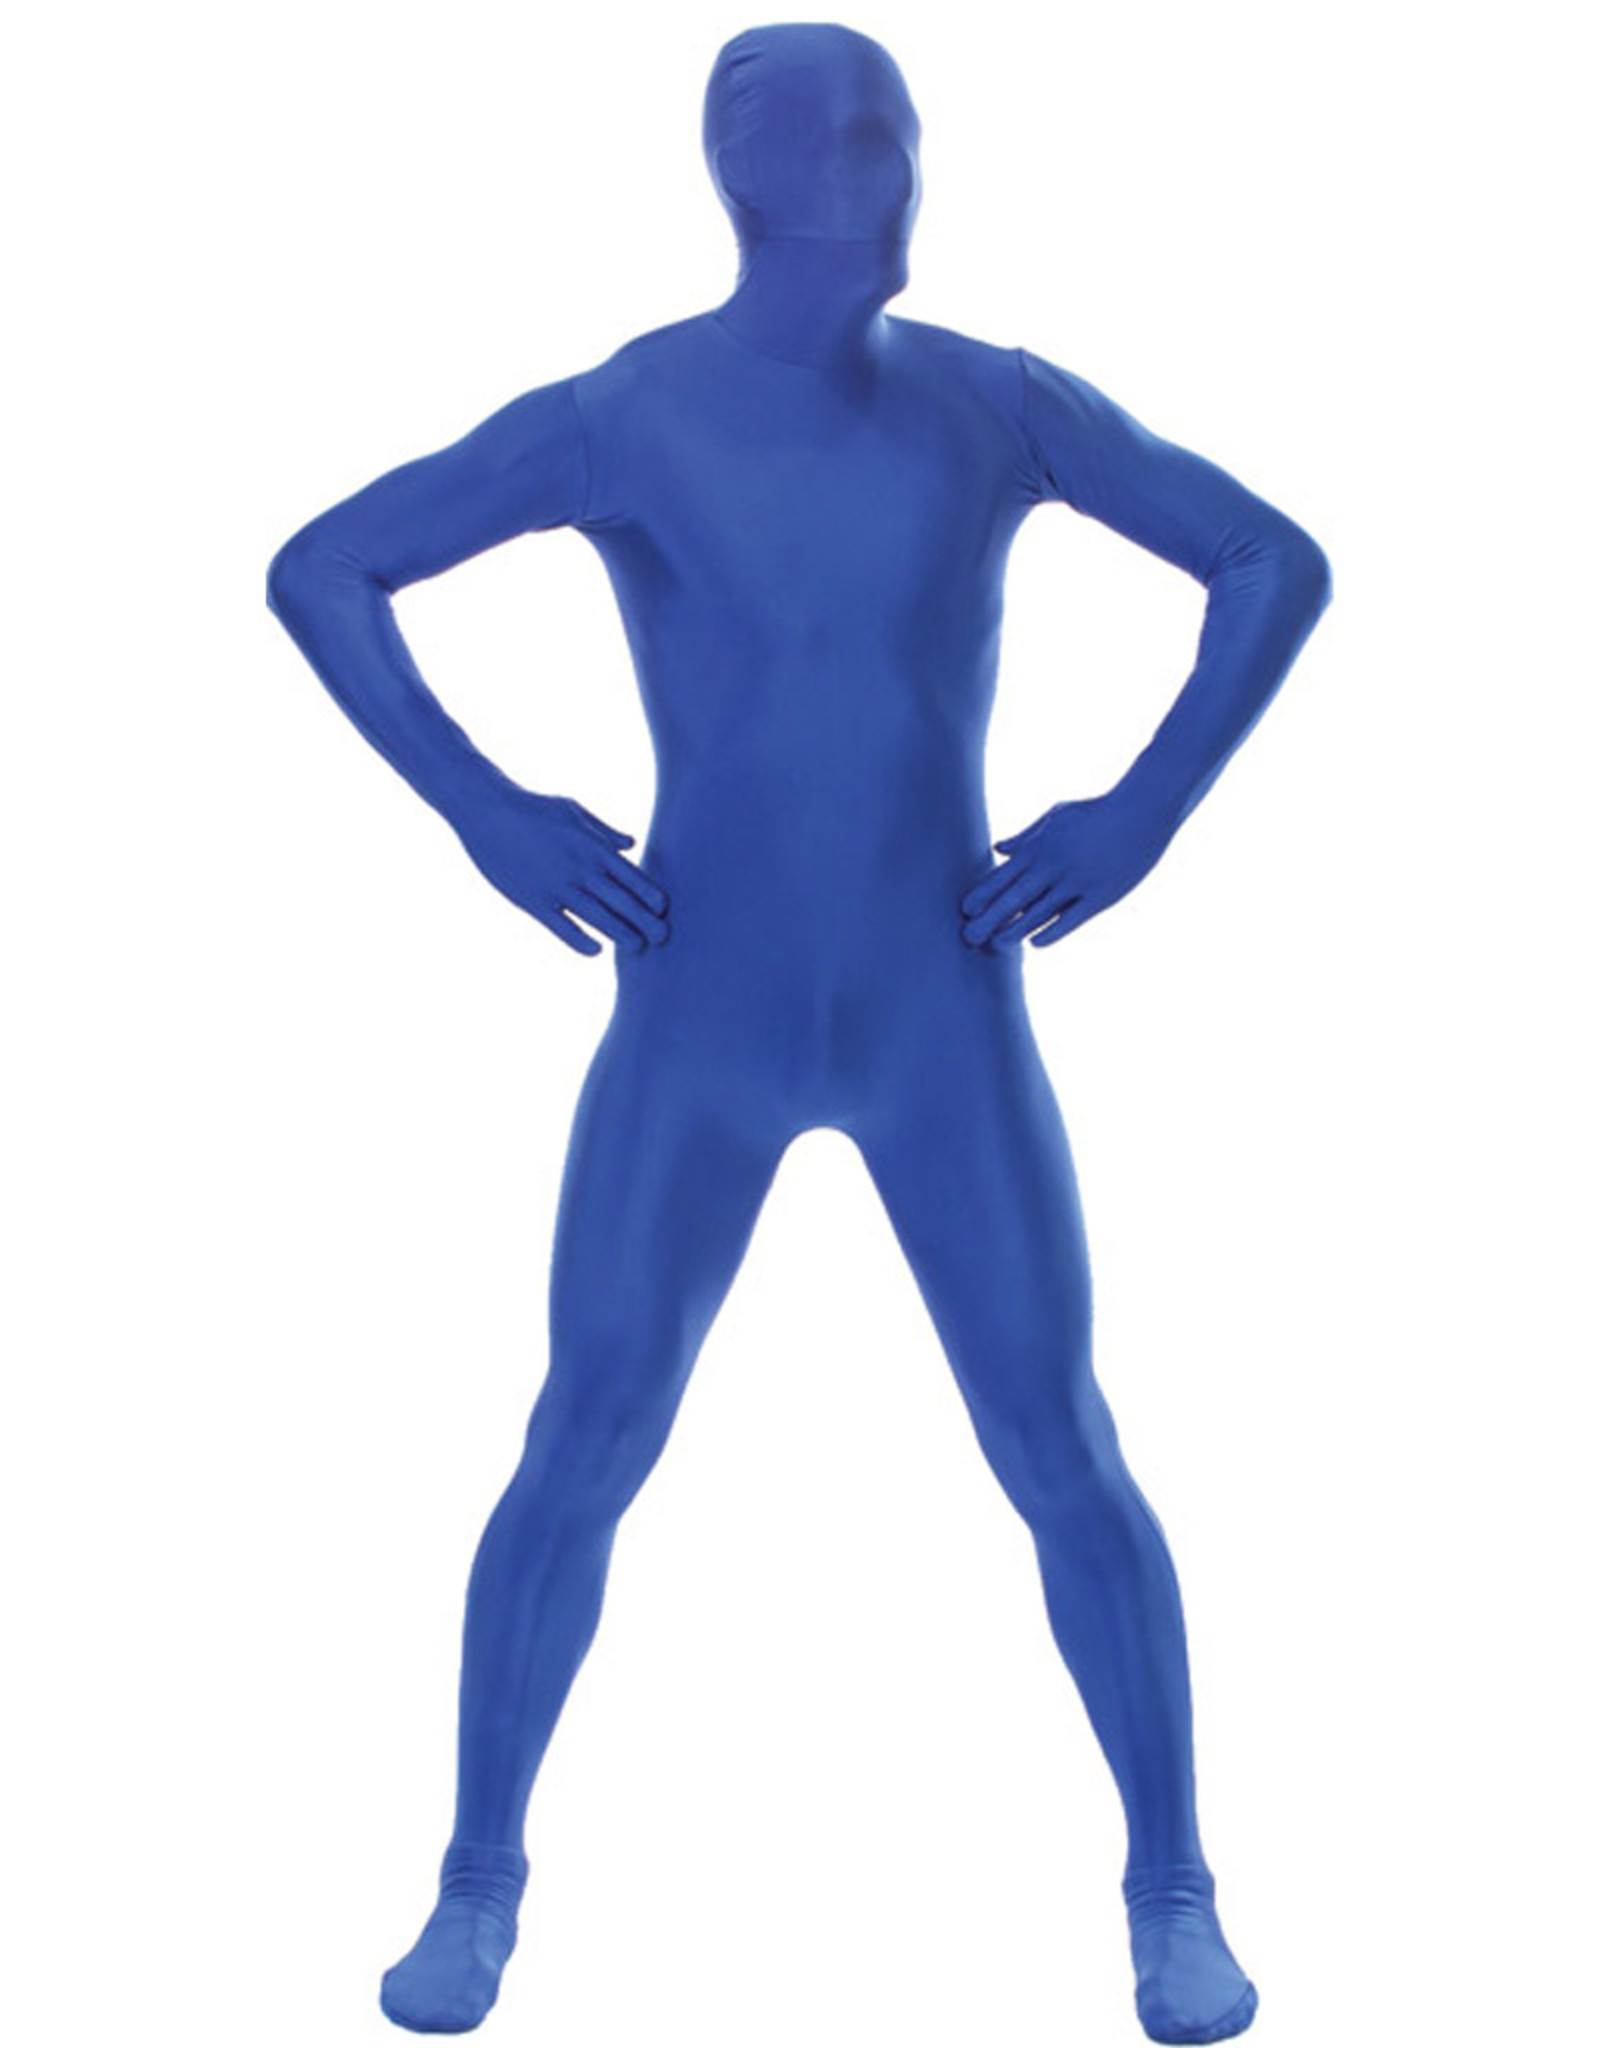 Blue Morphsuit Costume - Men's